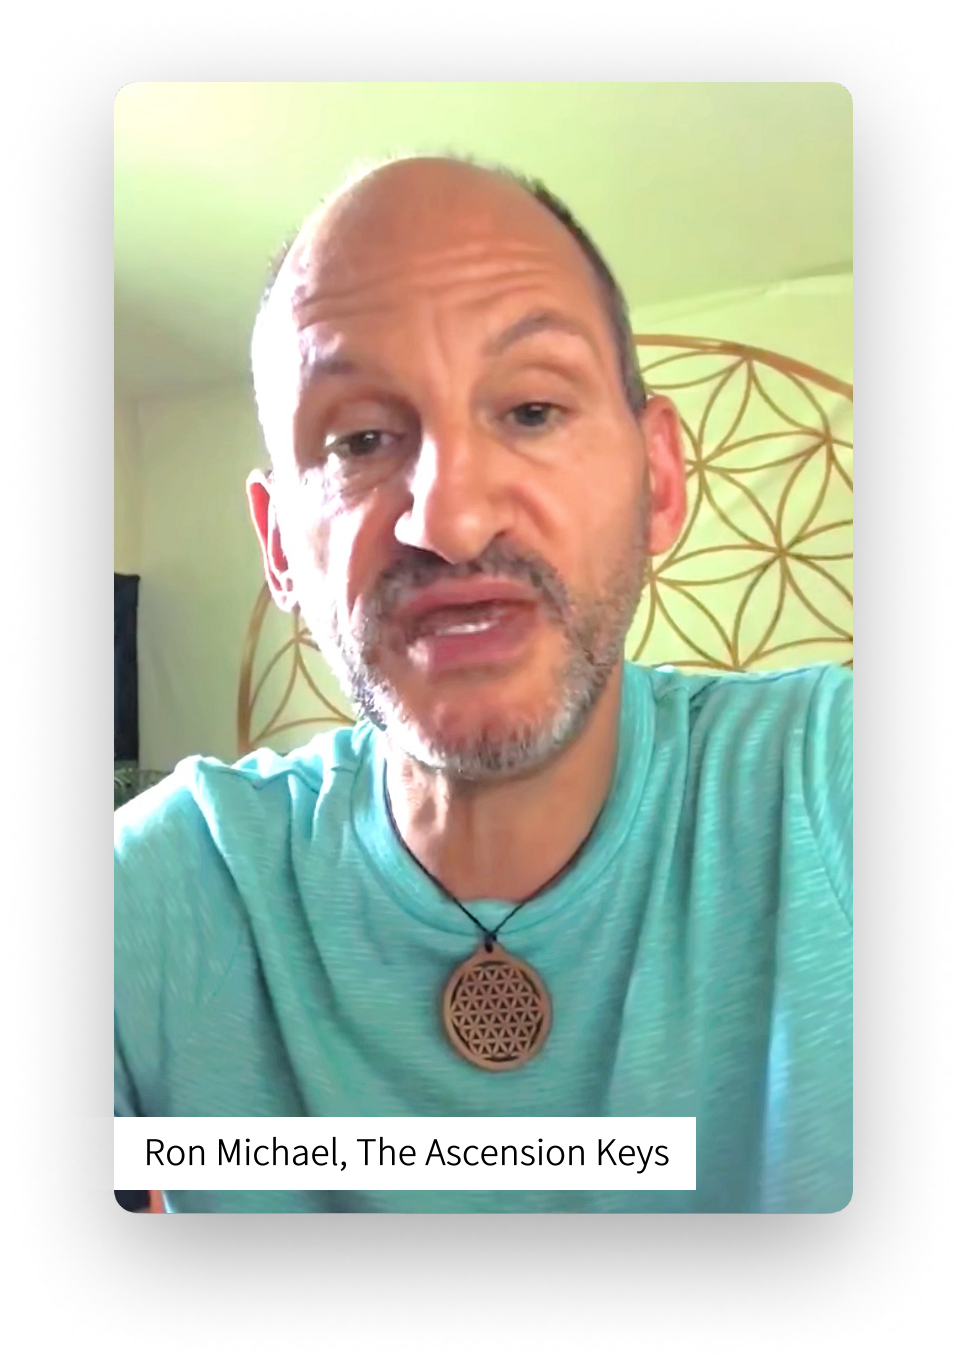 Screenshot of Ron Michael of The Ascension Keys leaving a video review for Relax with Adam Meditation Classes.